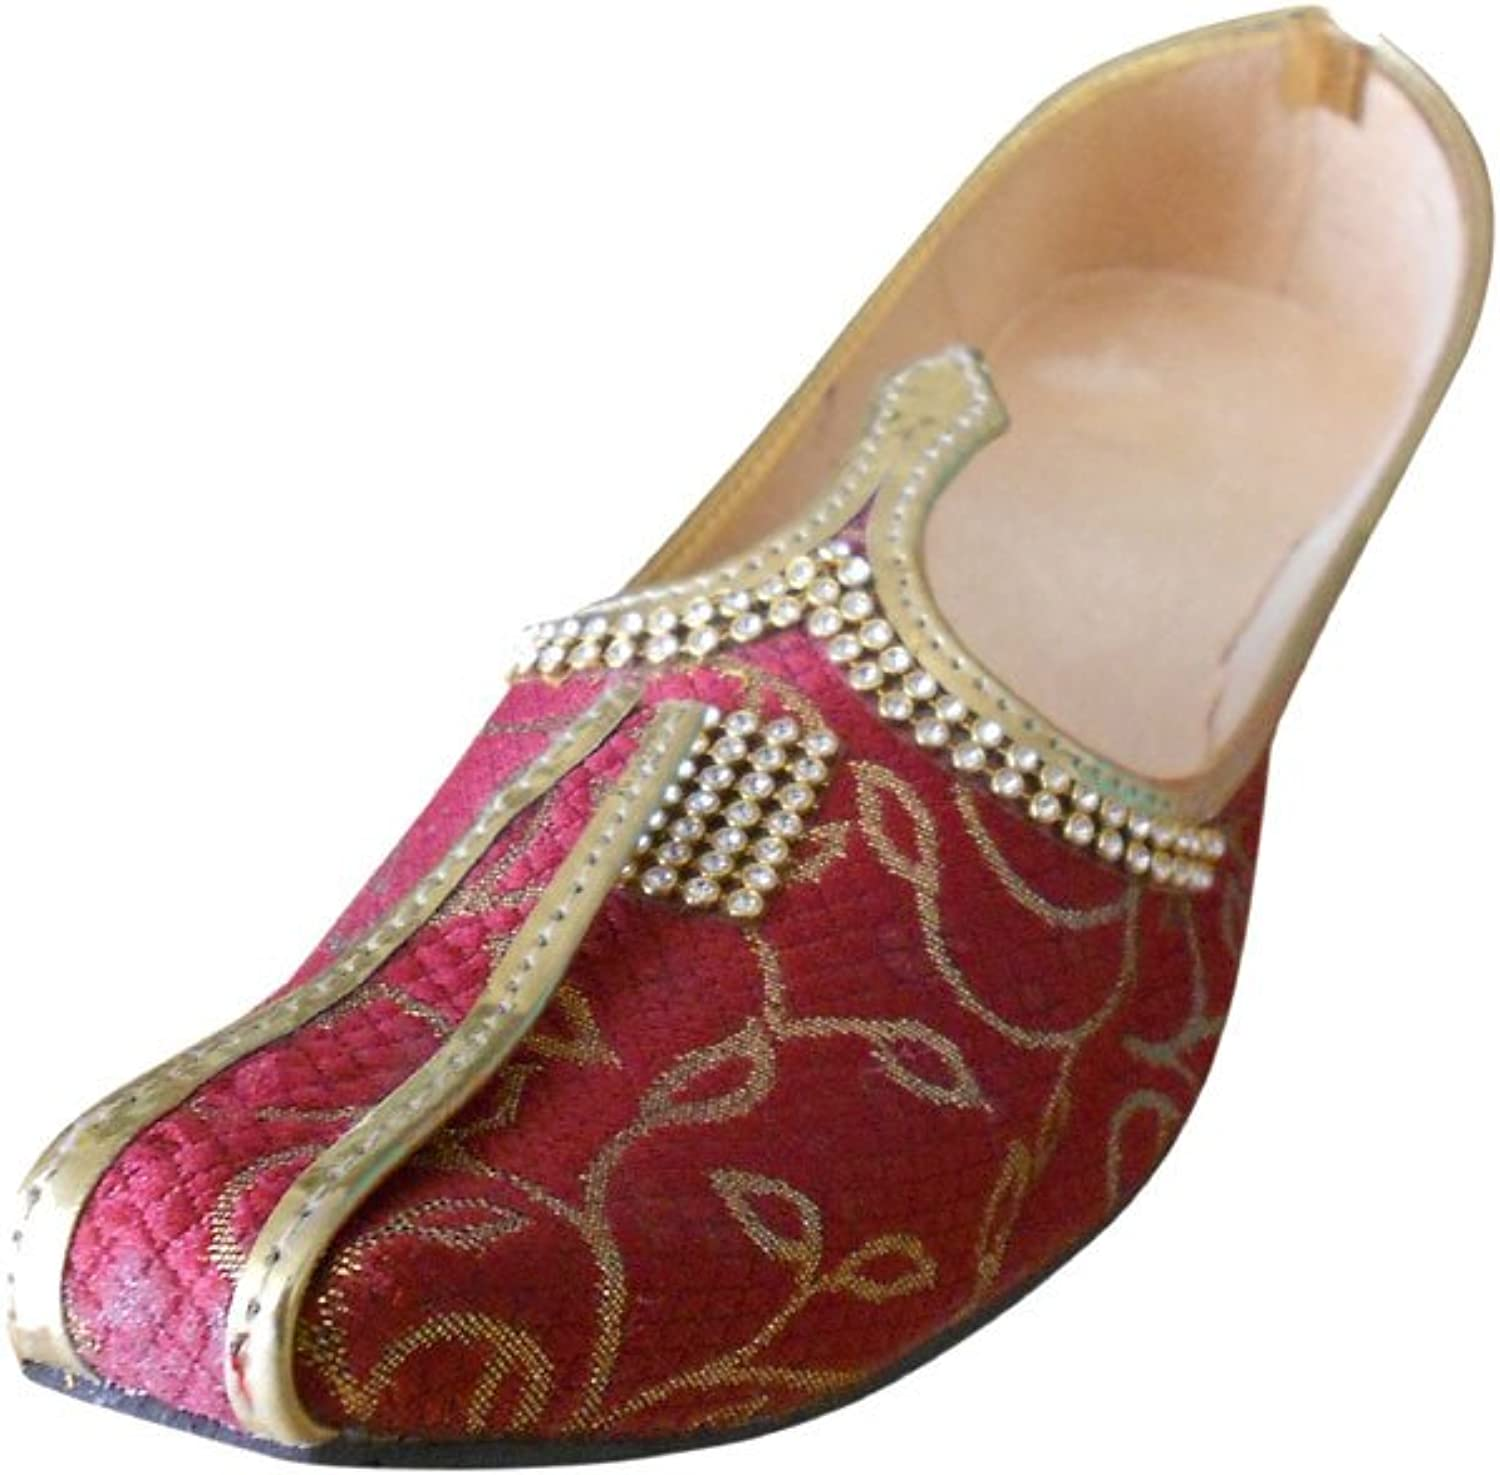 Kalra Creations Men's Traditional Indian Jutti Party shoes